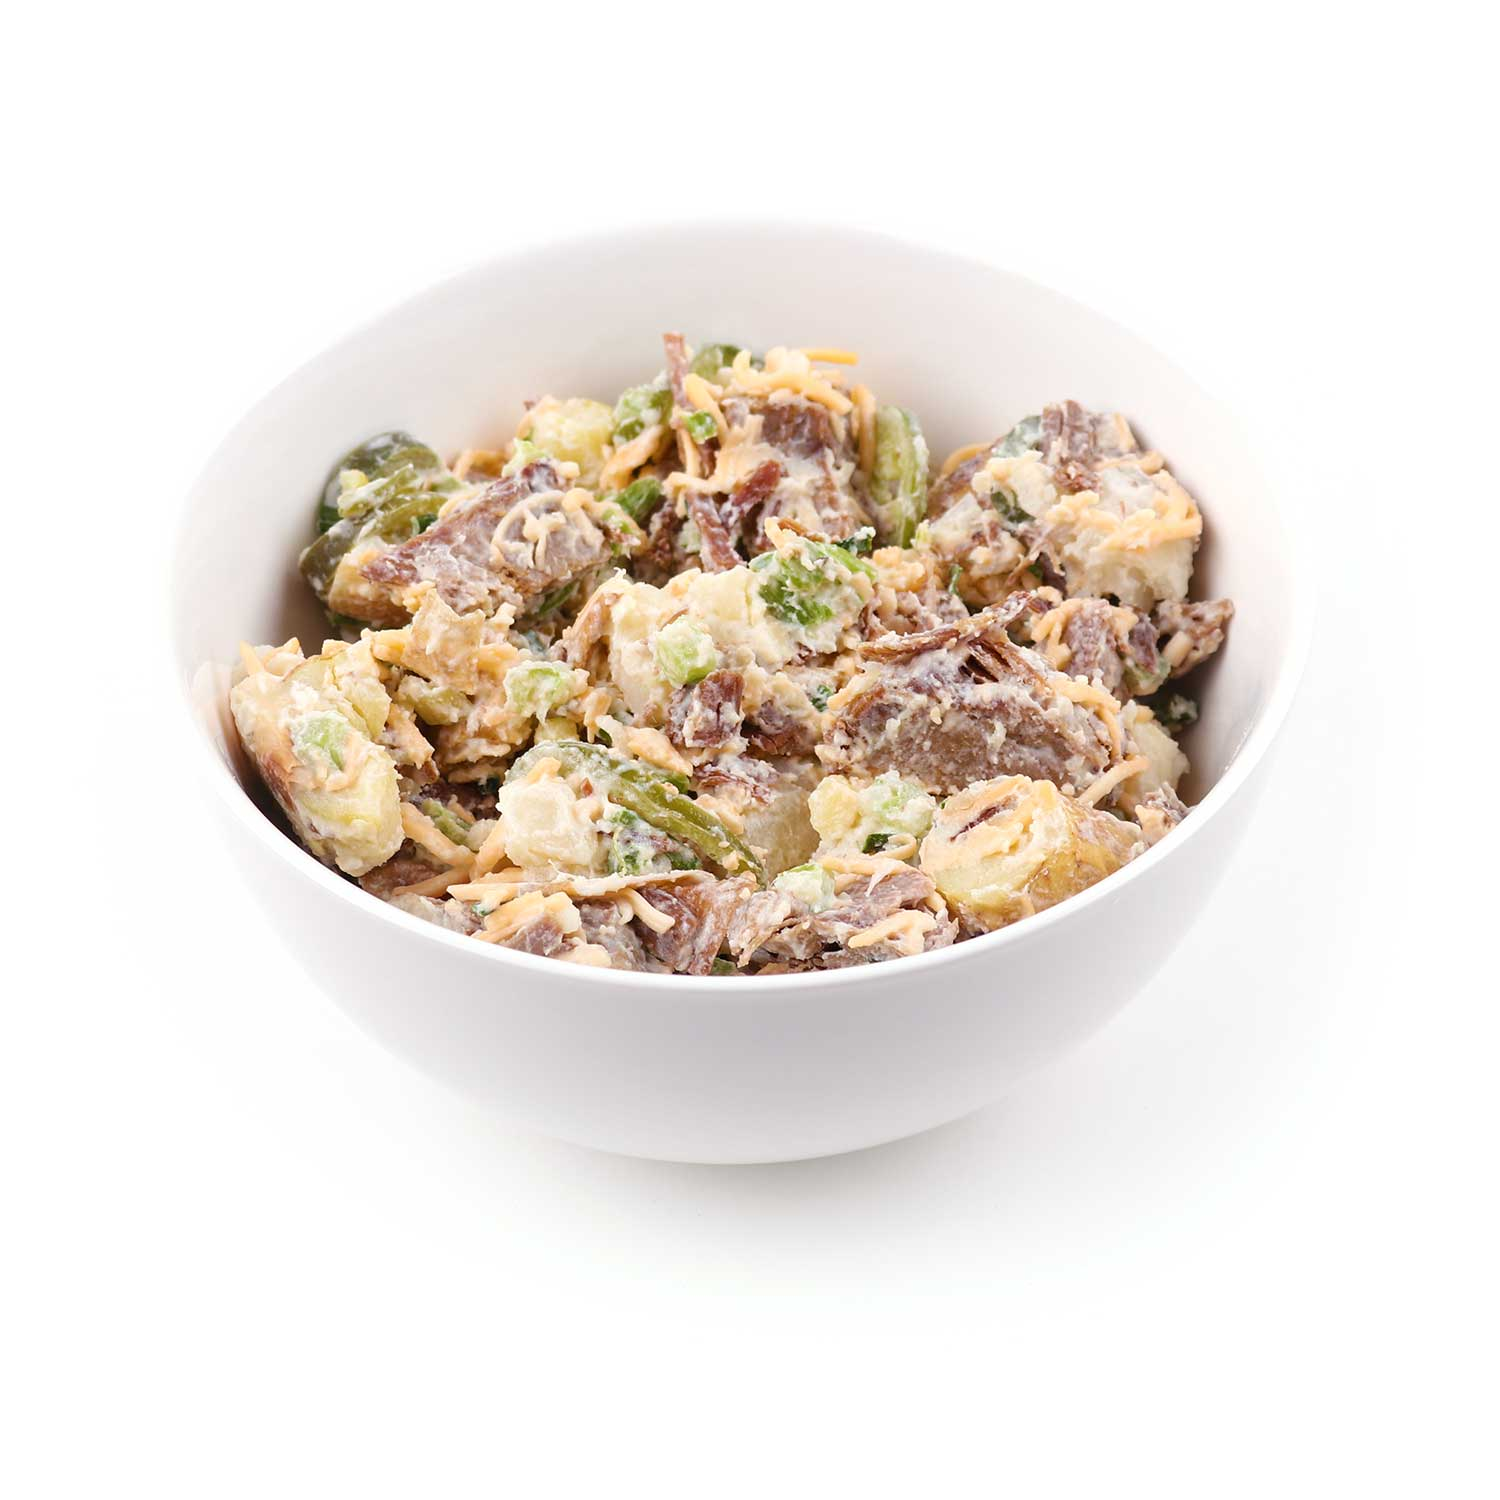 Brisket Potato Salad